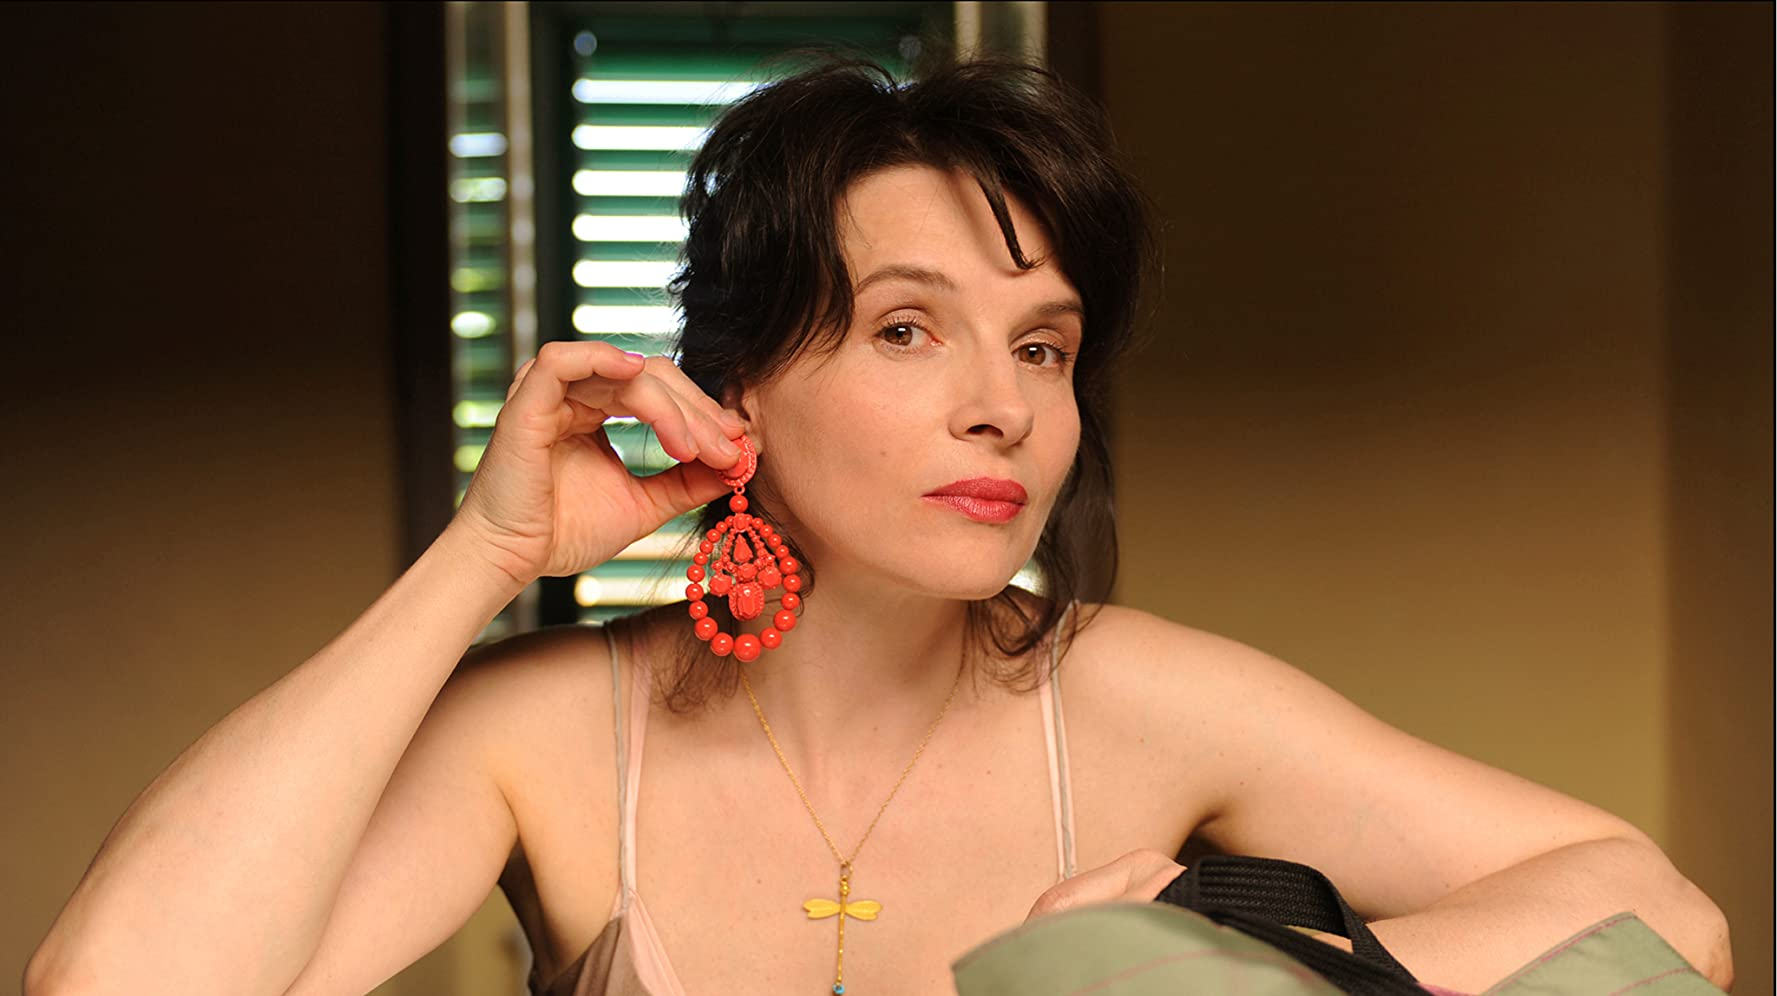 Juliette Binoche in Copie conforme (2010)